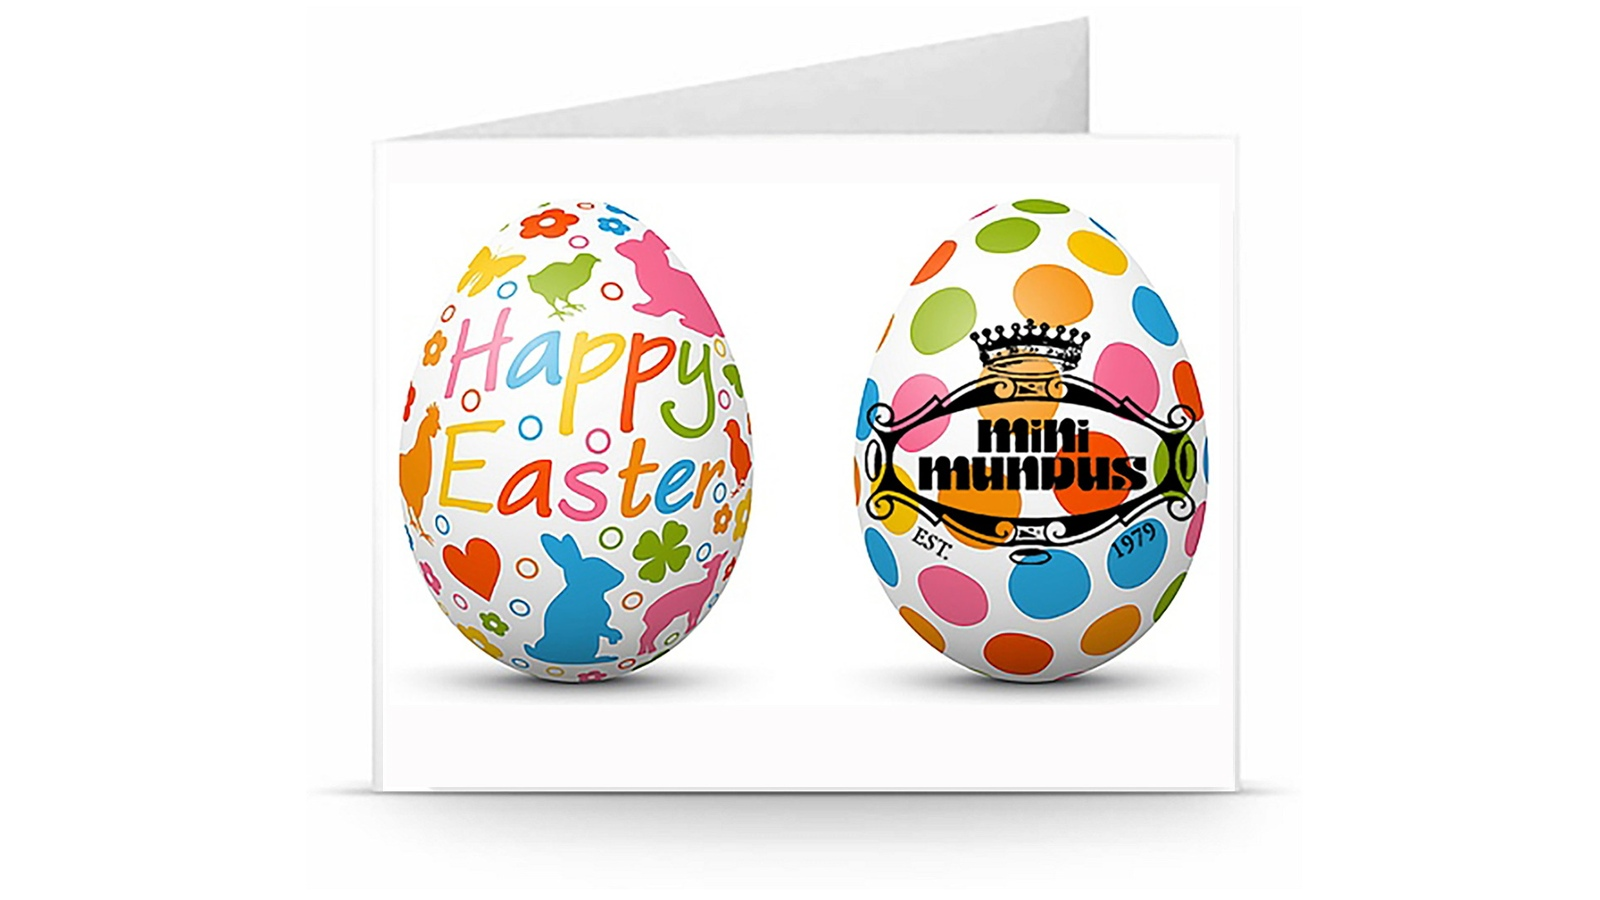 The perfect gift for Easter: Vouchers for self-printing!